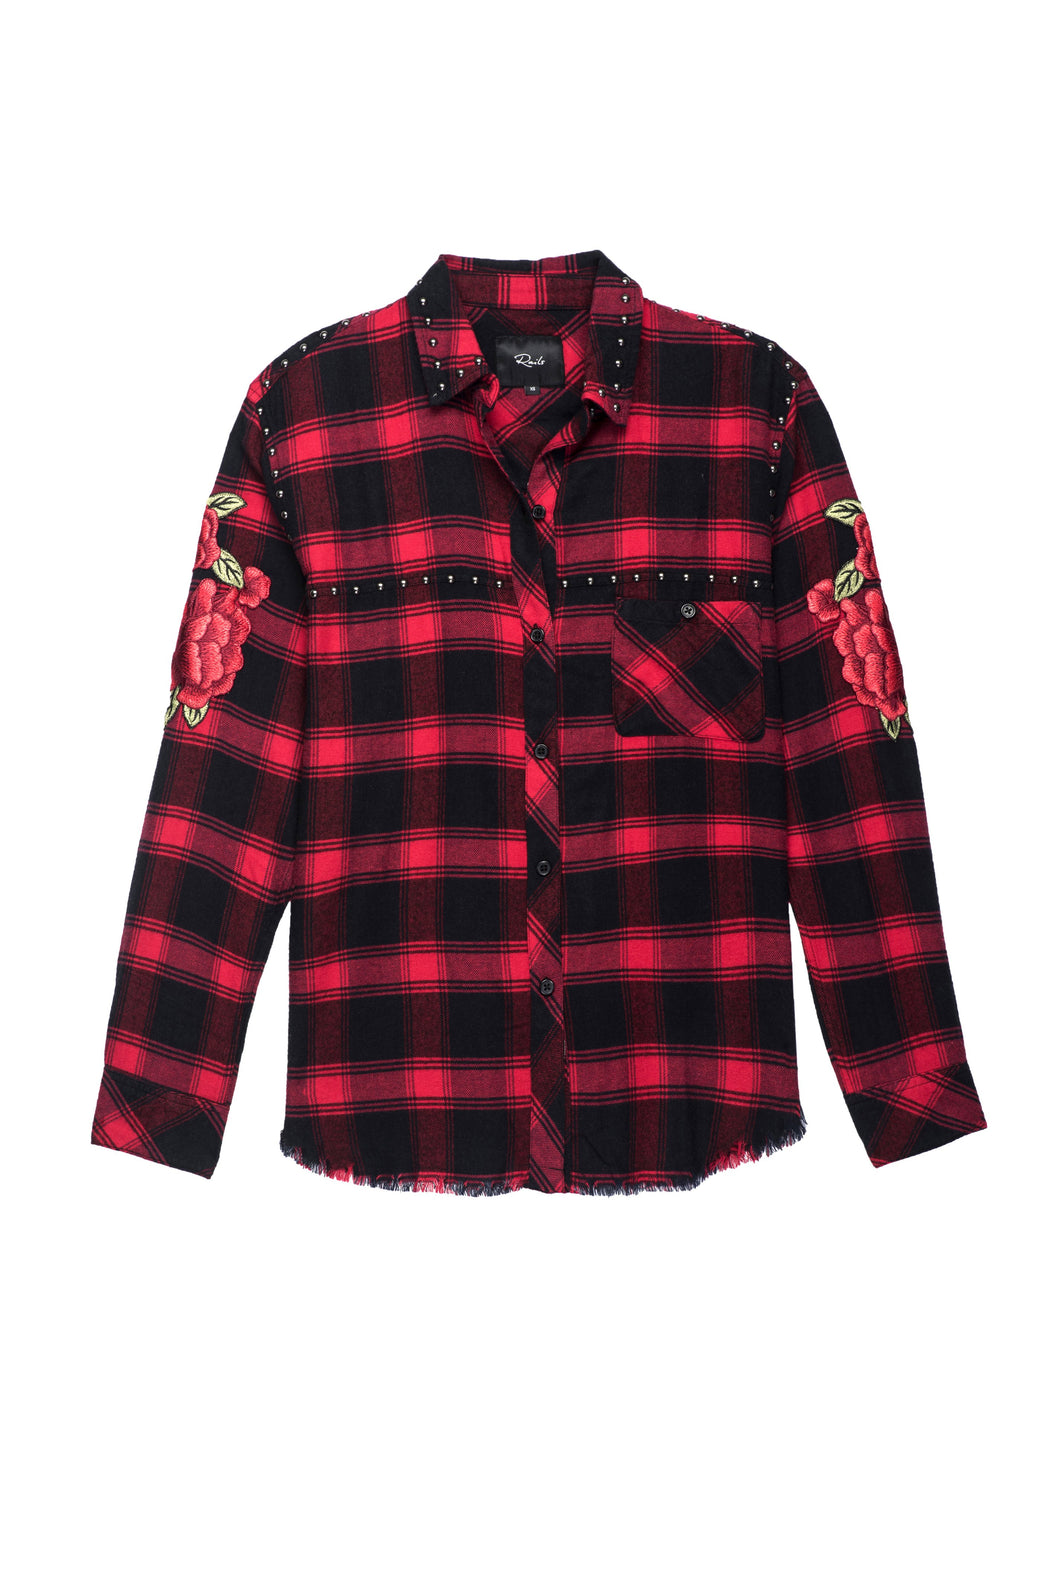 Teagan Red Cherry Patch Plaid Button Down